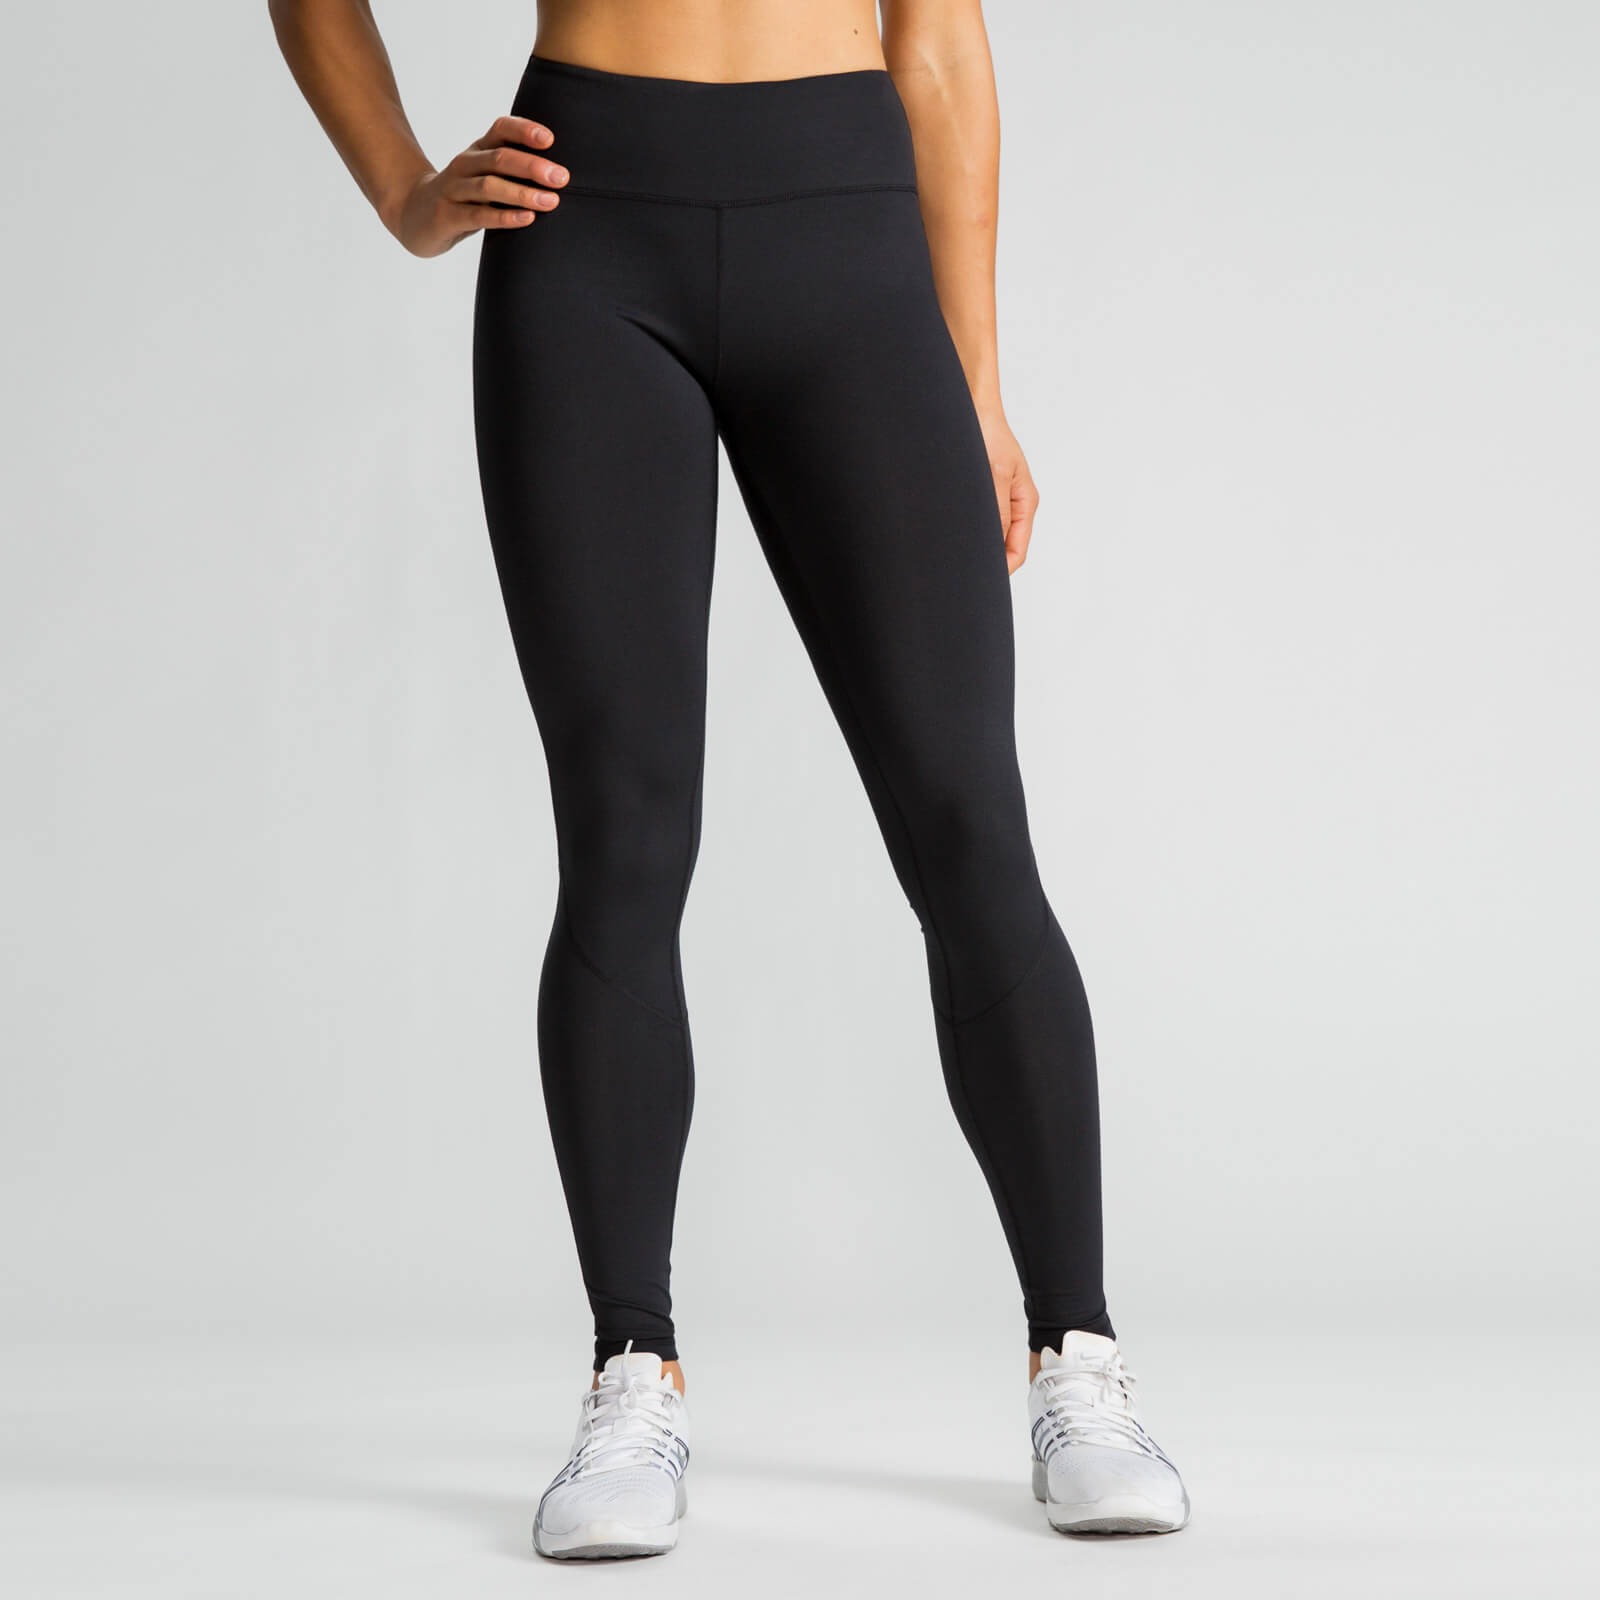 IdealFit Core Full Length Leggings - Black